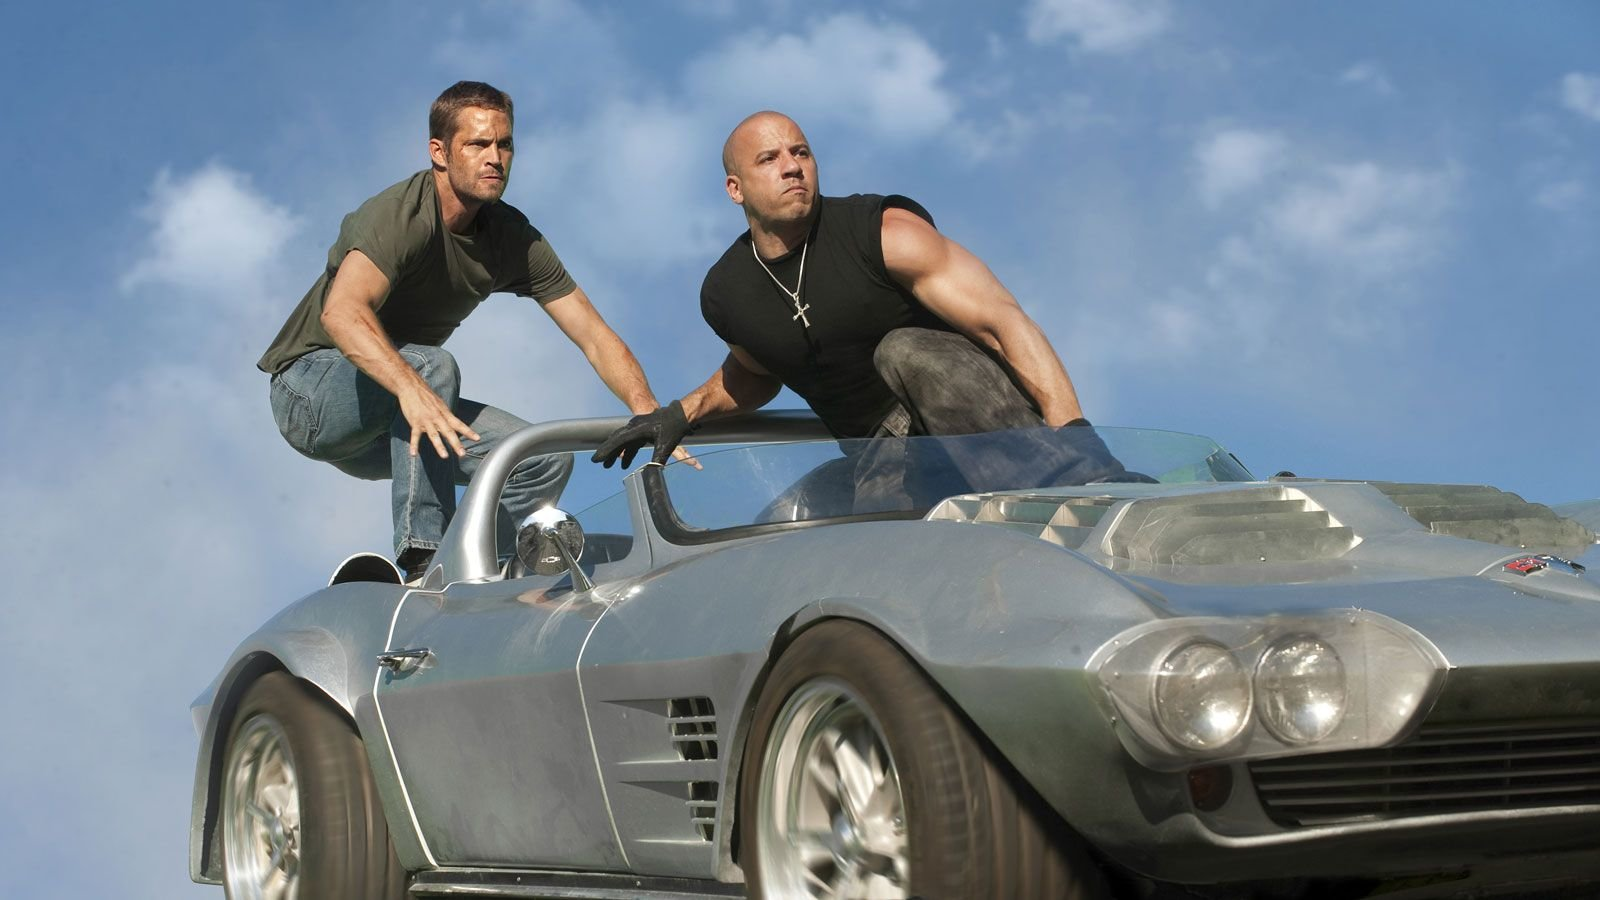 'Fast Five' And 'The Hangover: Part II' Among Year's Most-Pirated Movies